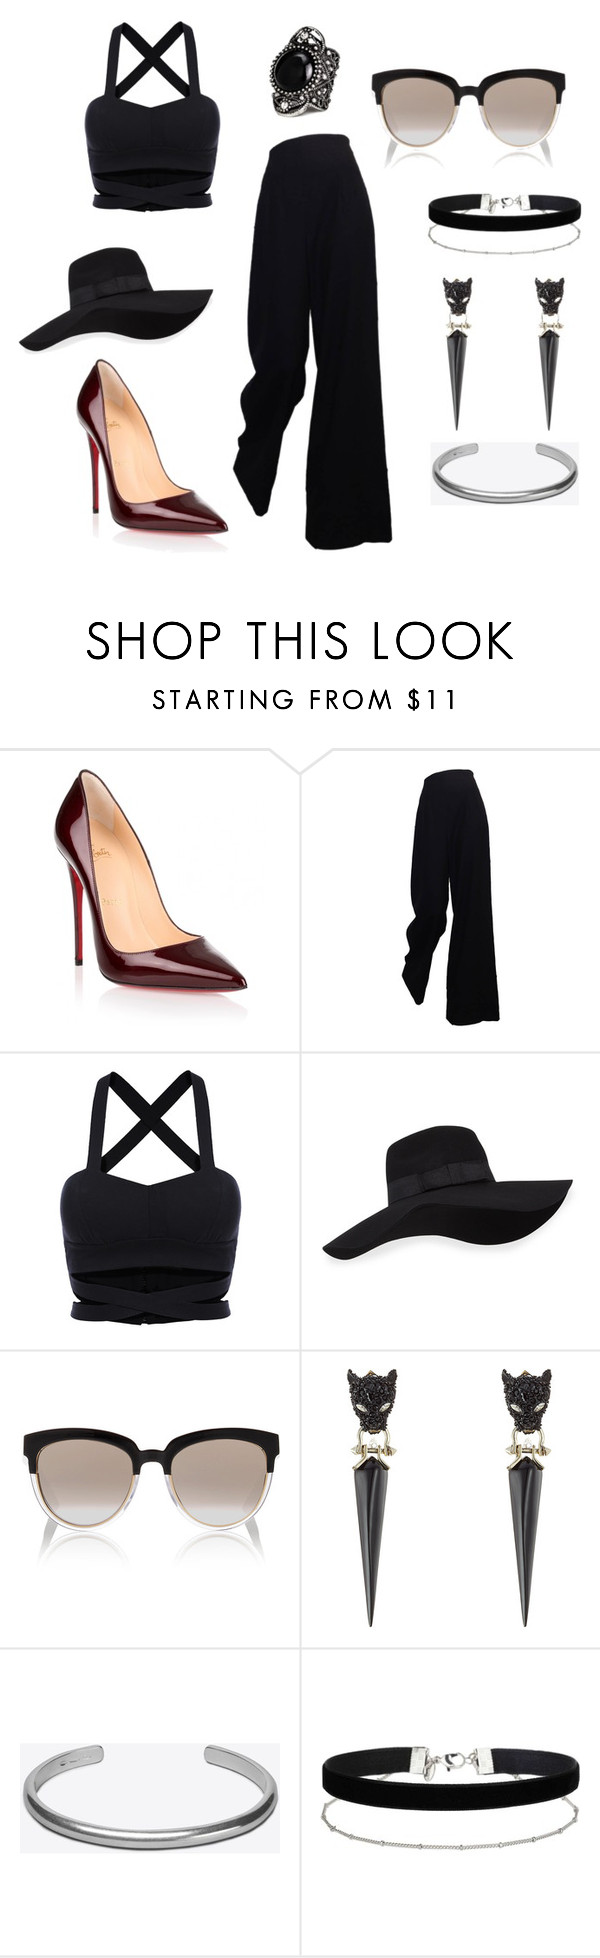 """""""Untitled #355"""" by chilosa3325 on Polyvore featuring Christian Louboutin, The Row, San Diego Hat Co., Christian Dior, Alexis Bittar, Maison Margiela and Miss Selfridge"""